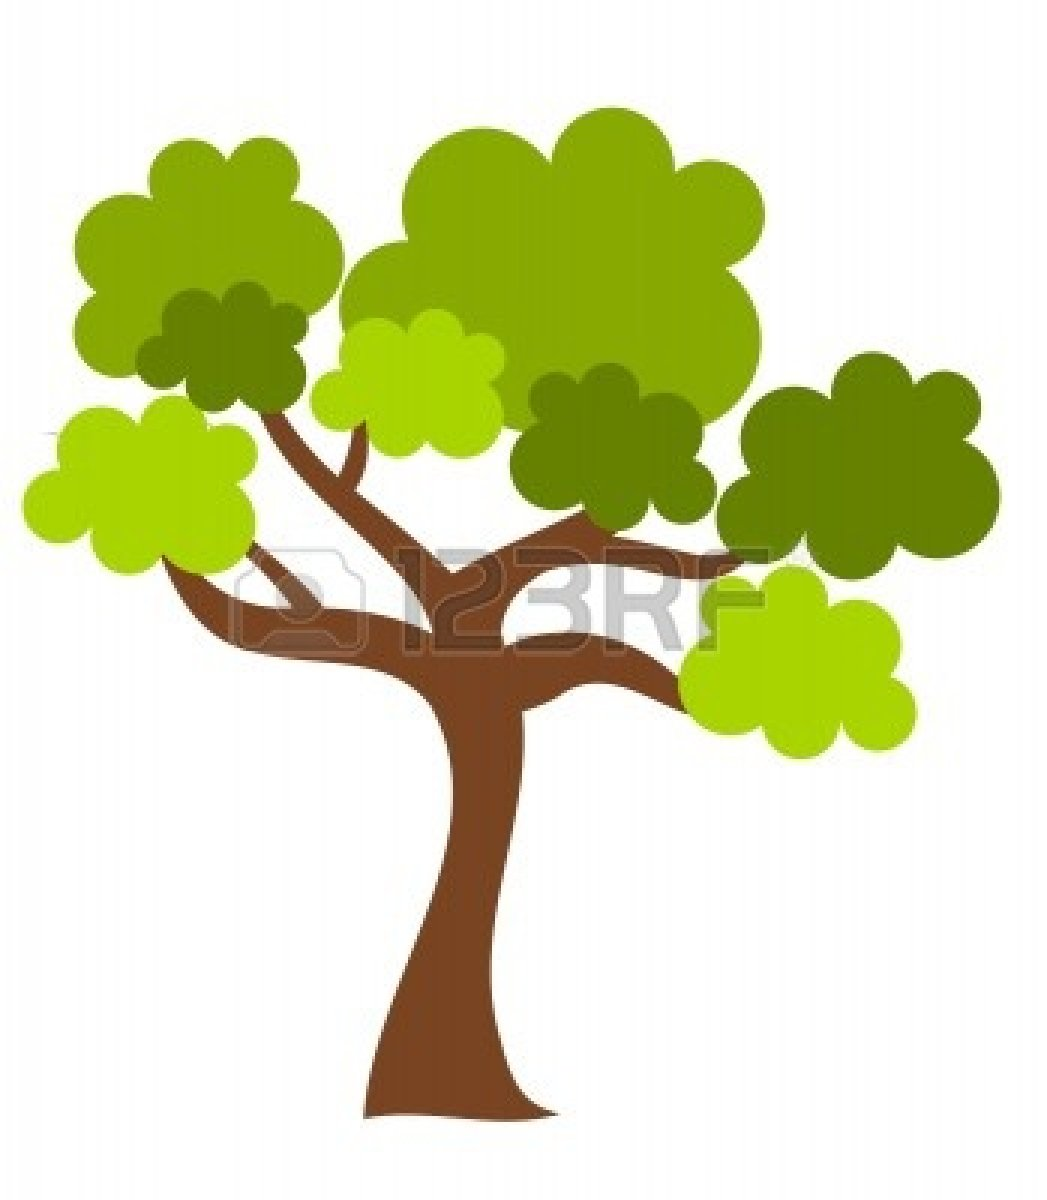 Oak Tree  All About Oak Trees  2020siteorg